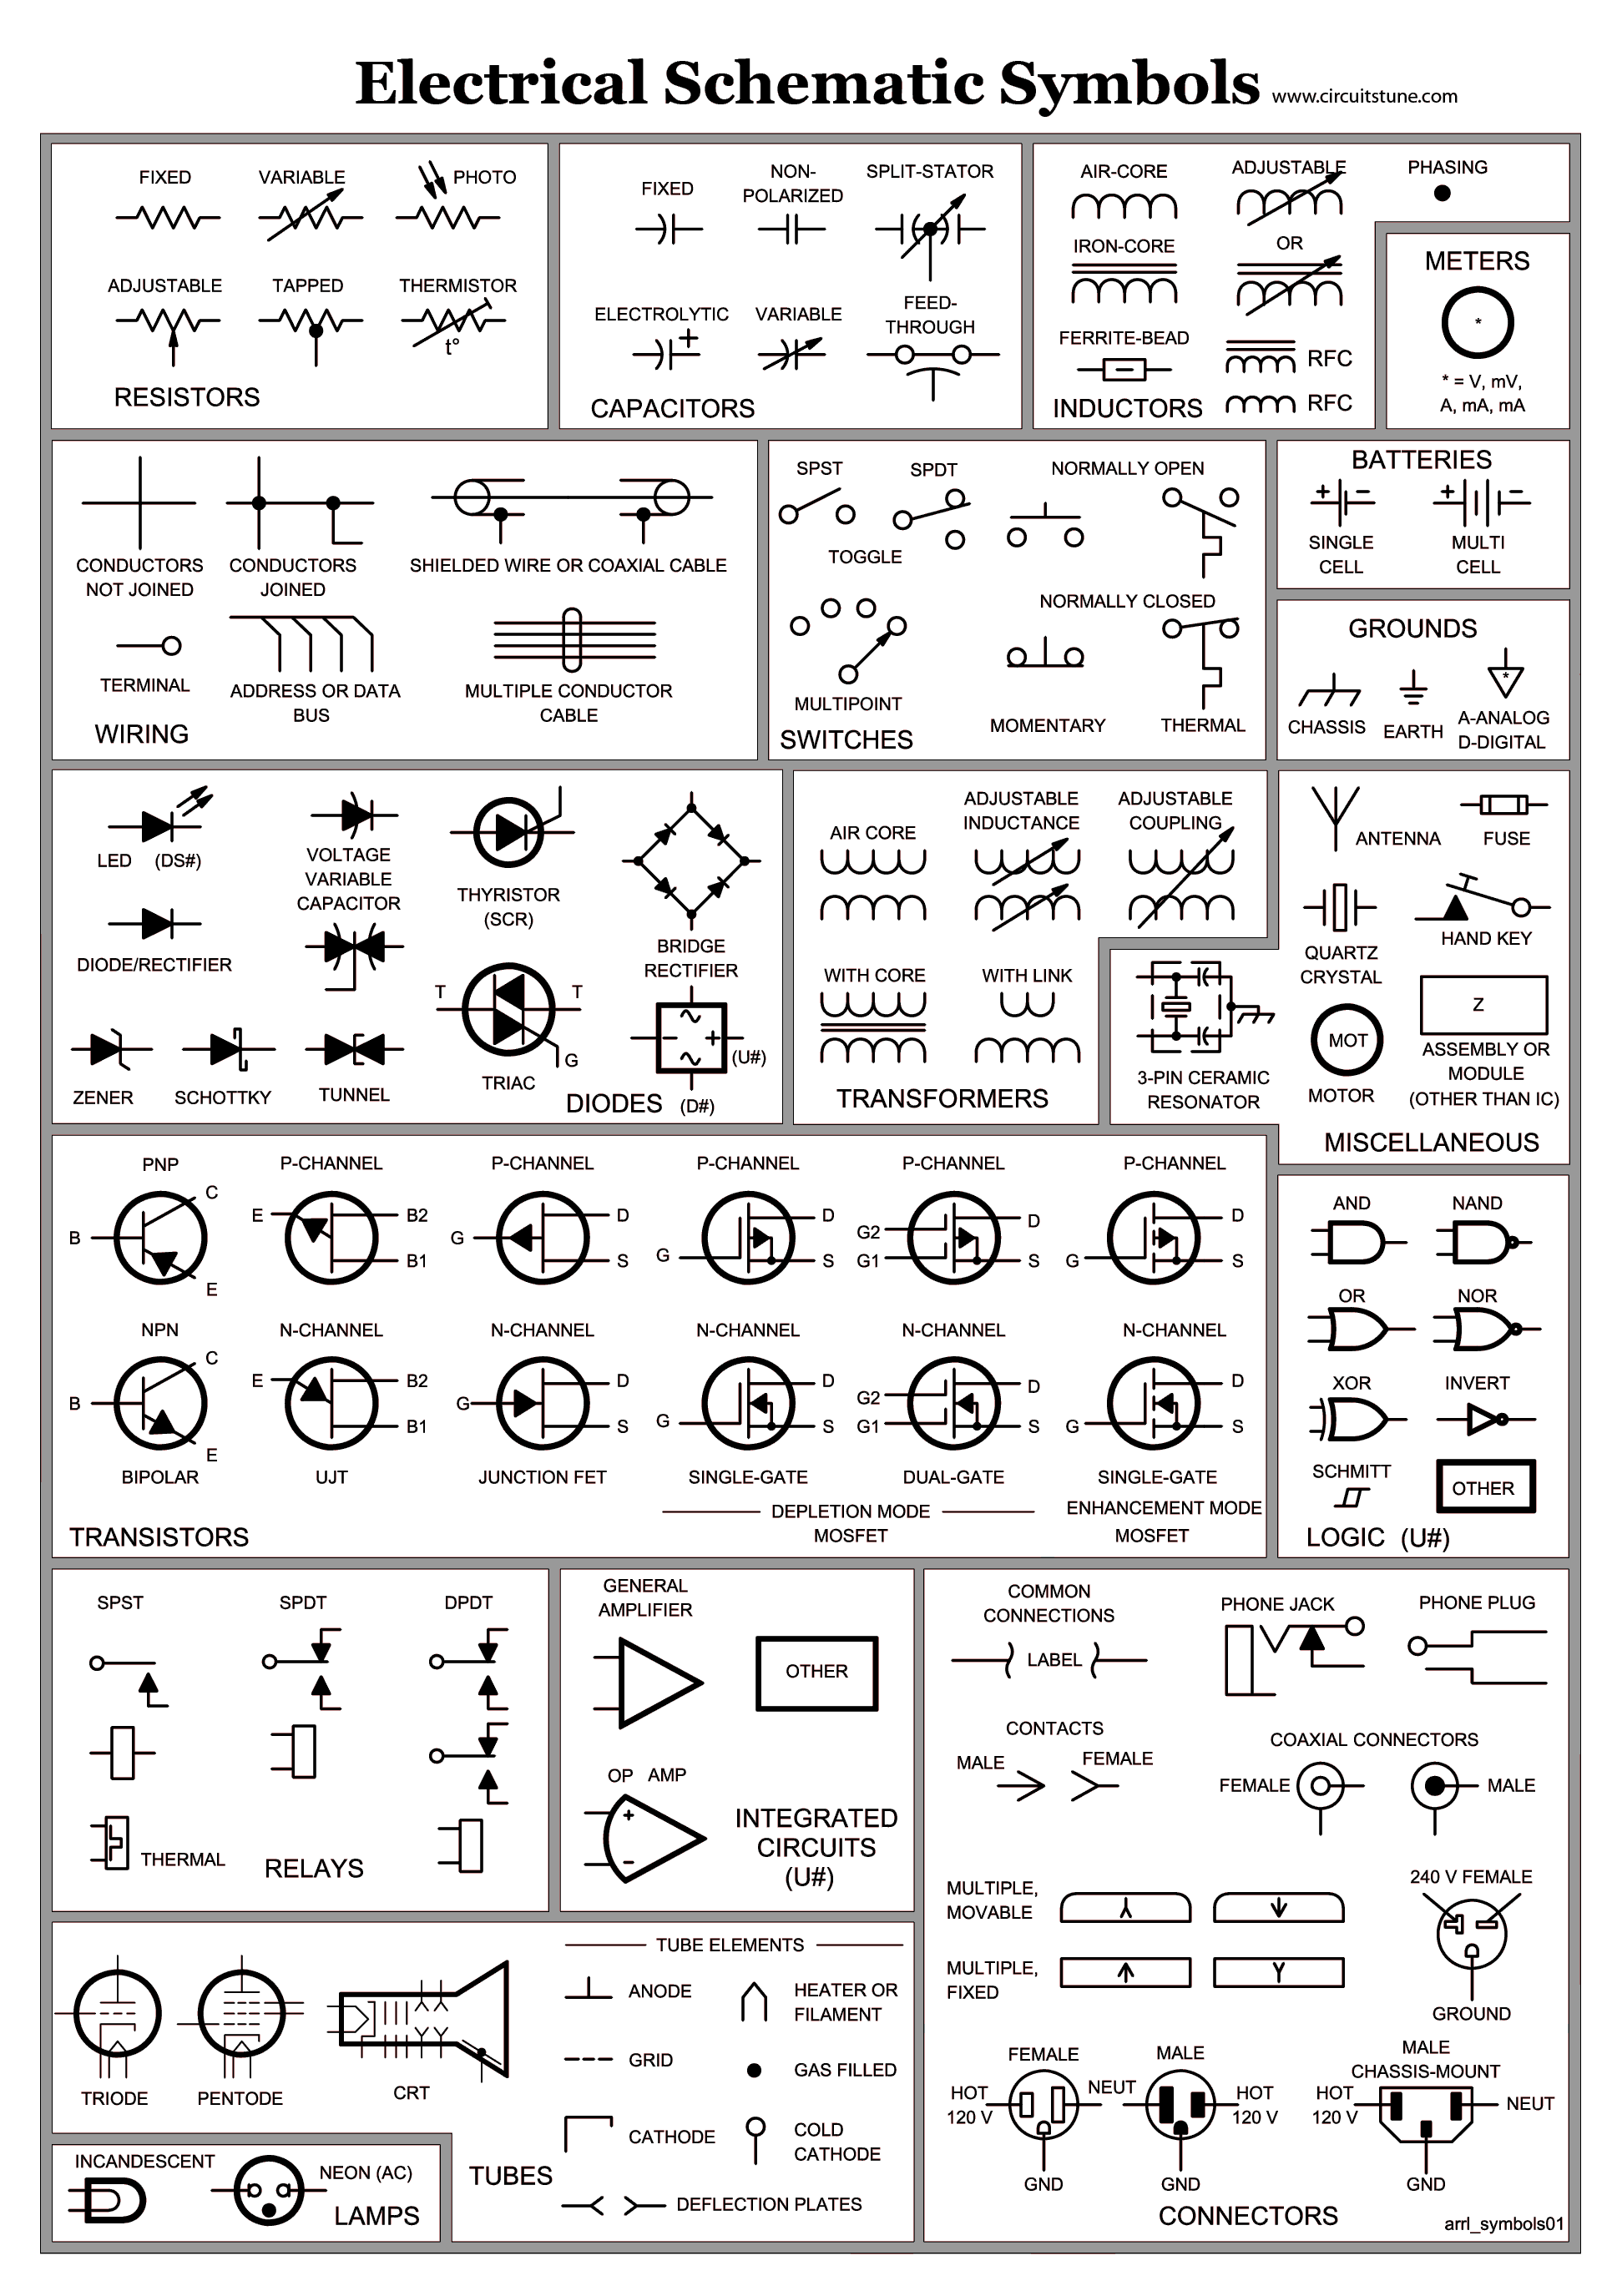 hight resolution of electrical schematic symbols wire diagram symbols automotive wiring circuit diagram symbols electrical schematic symbols wire diagram